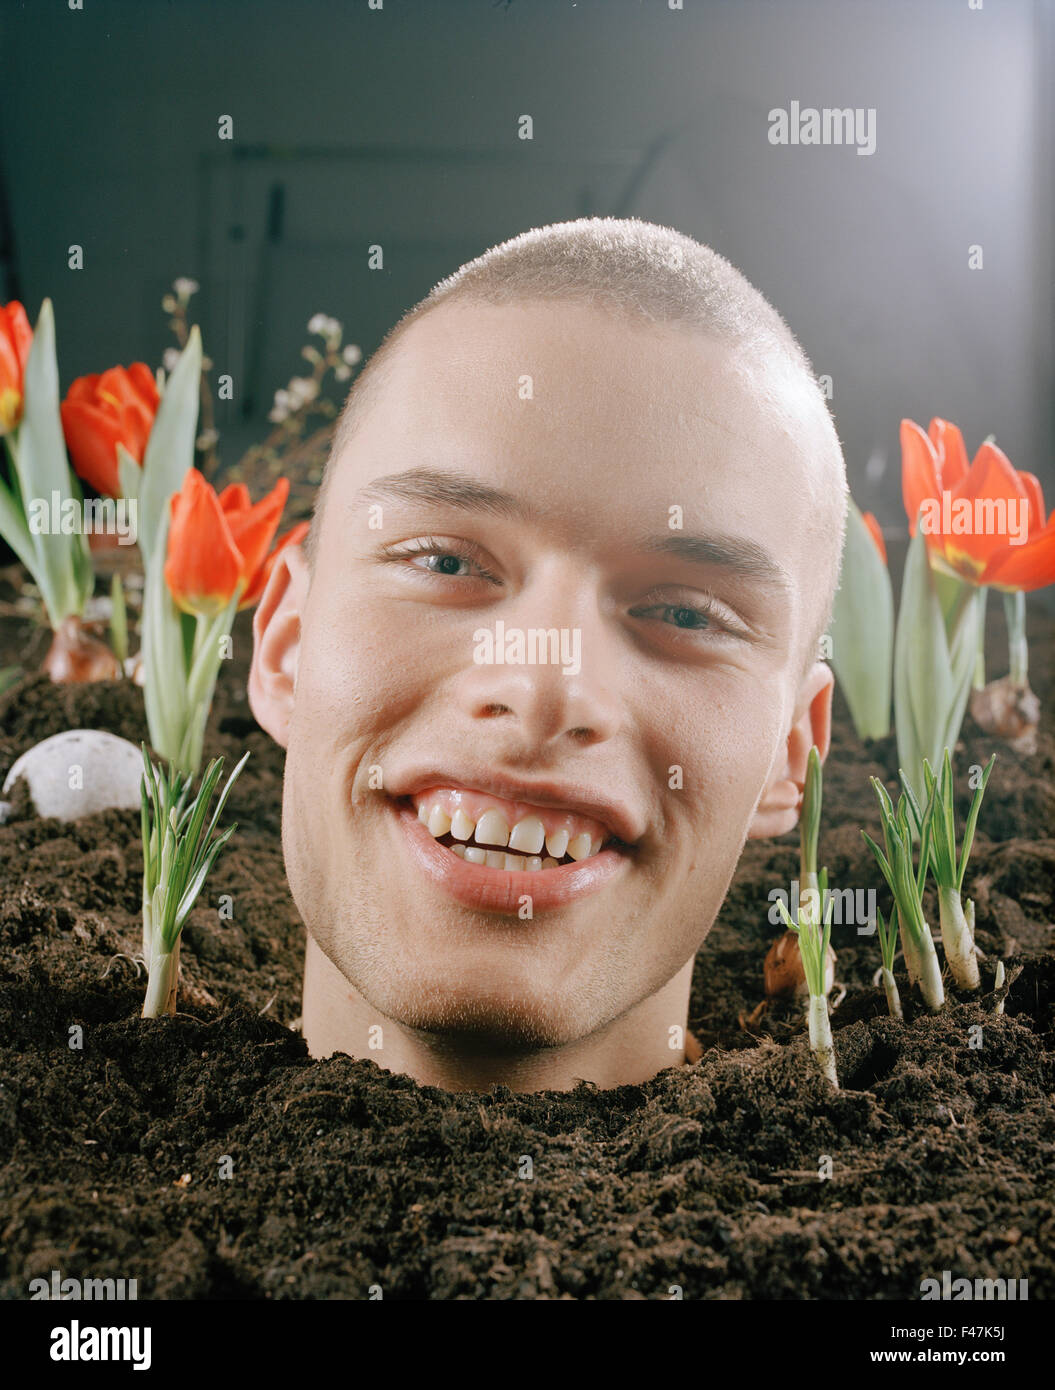 The head of a man in a flowerbed, Sverige. - Stock Image